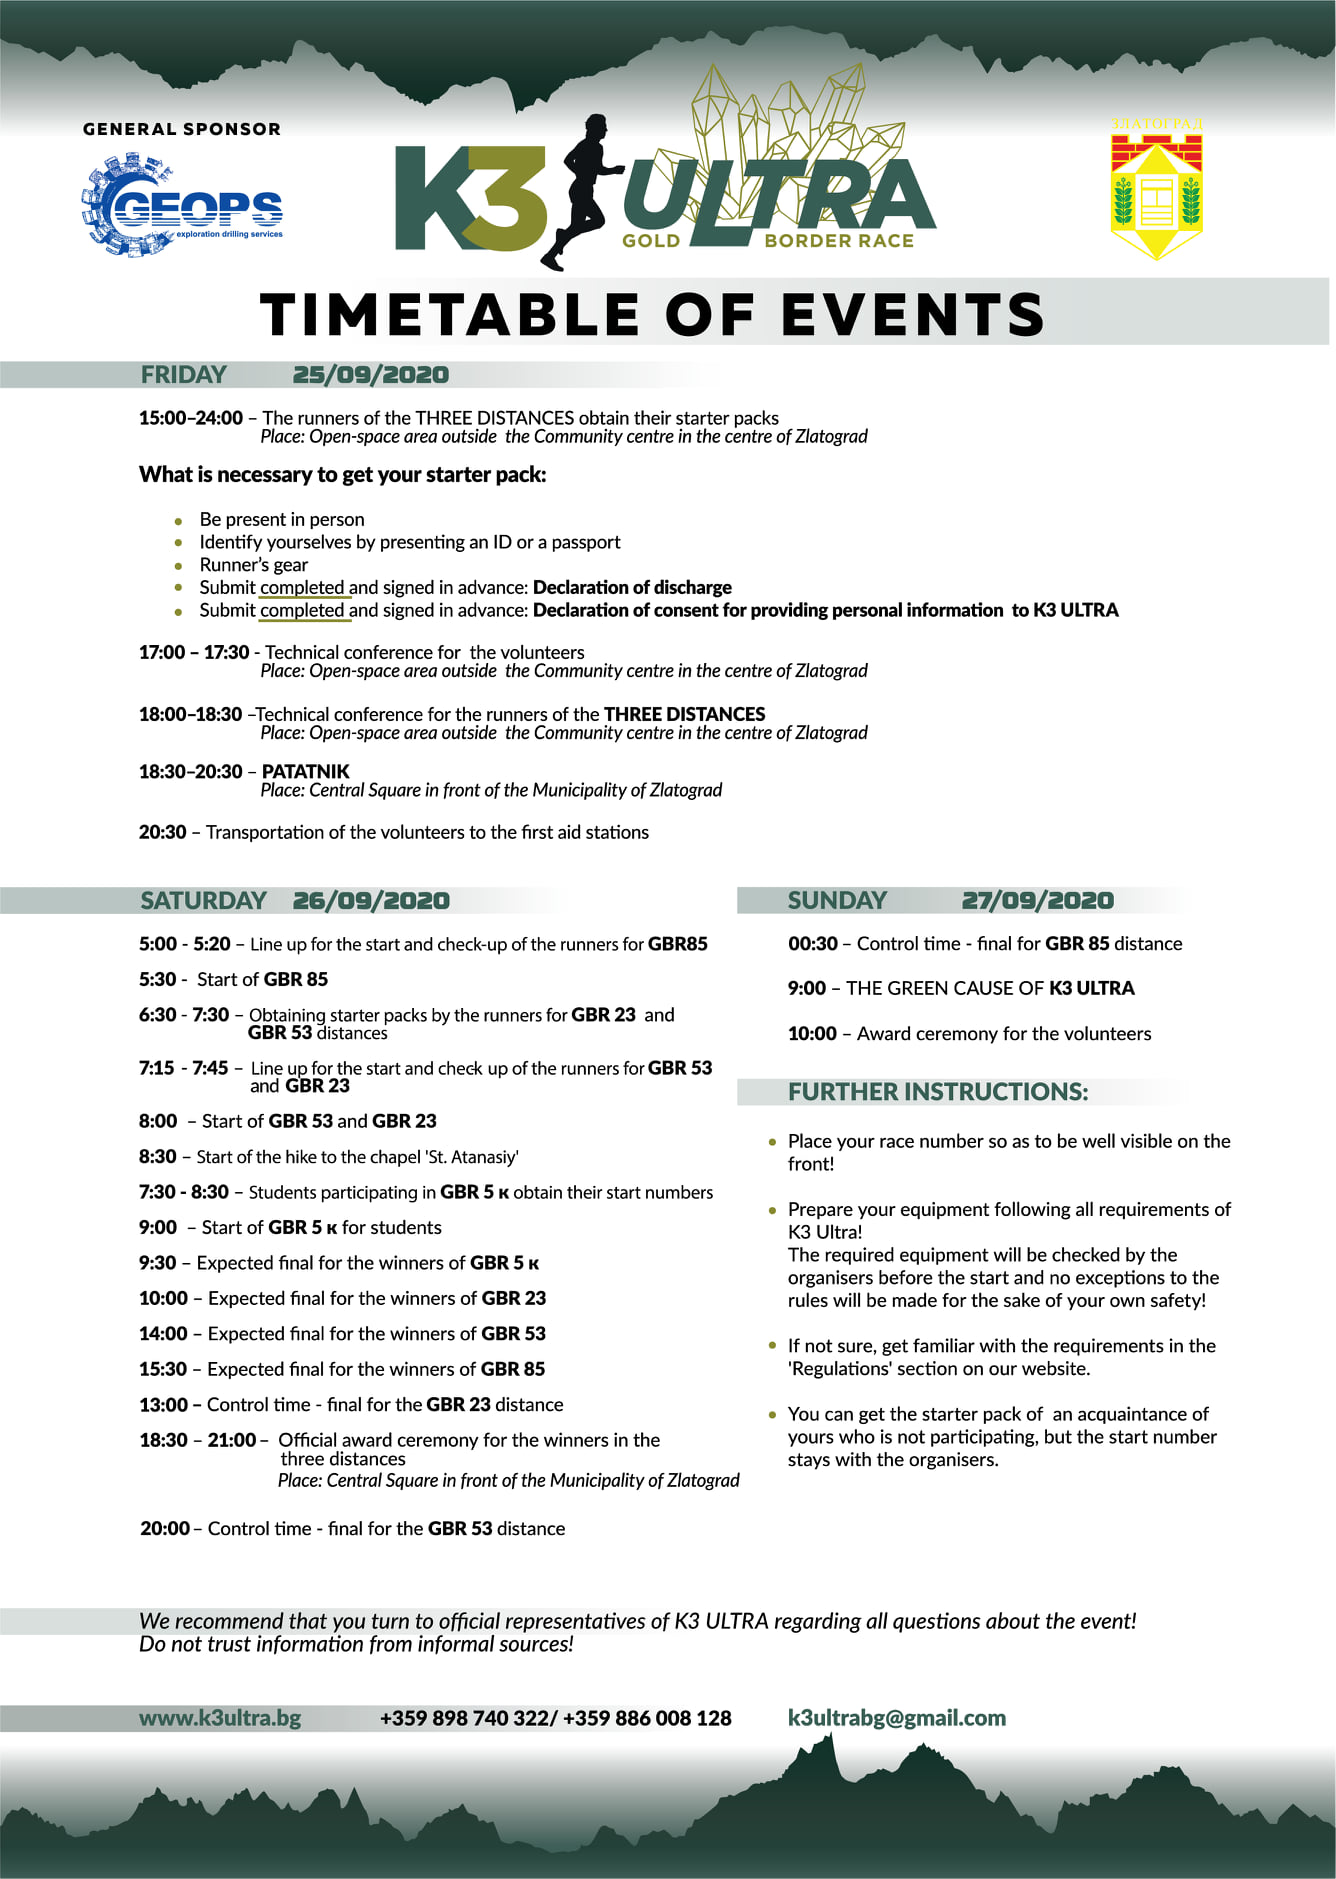 K3 Ultra 2020 Timetable of events